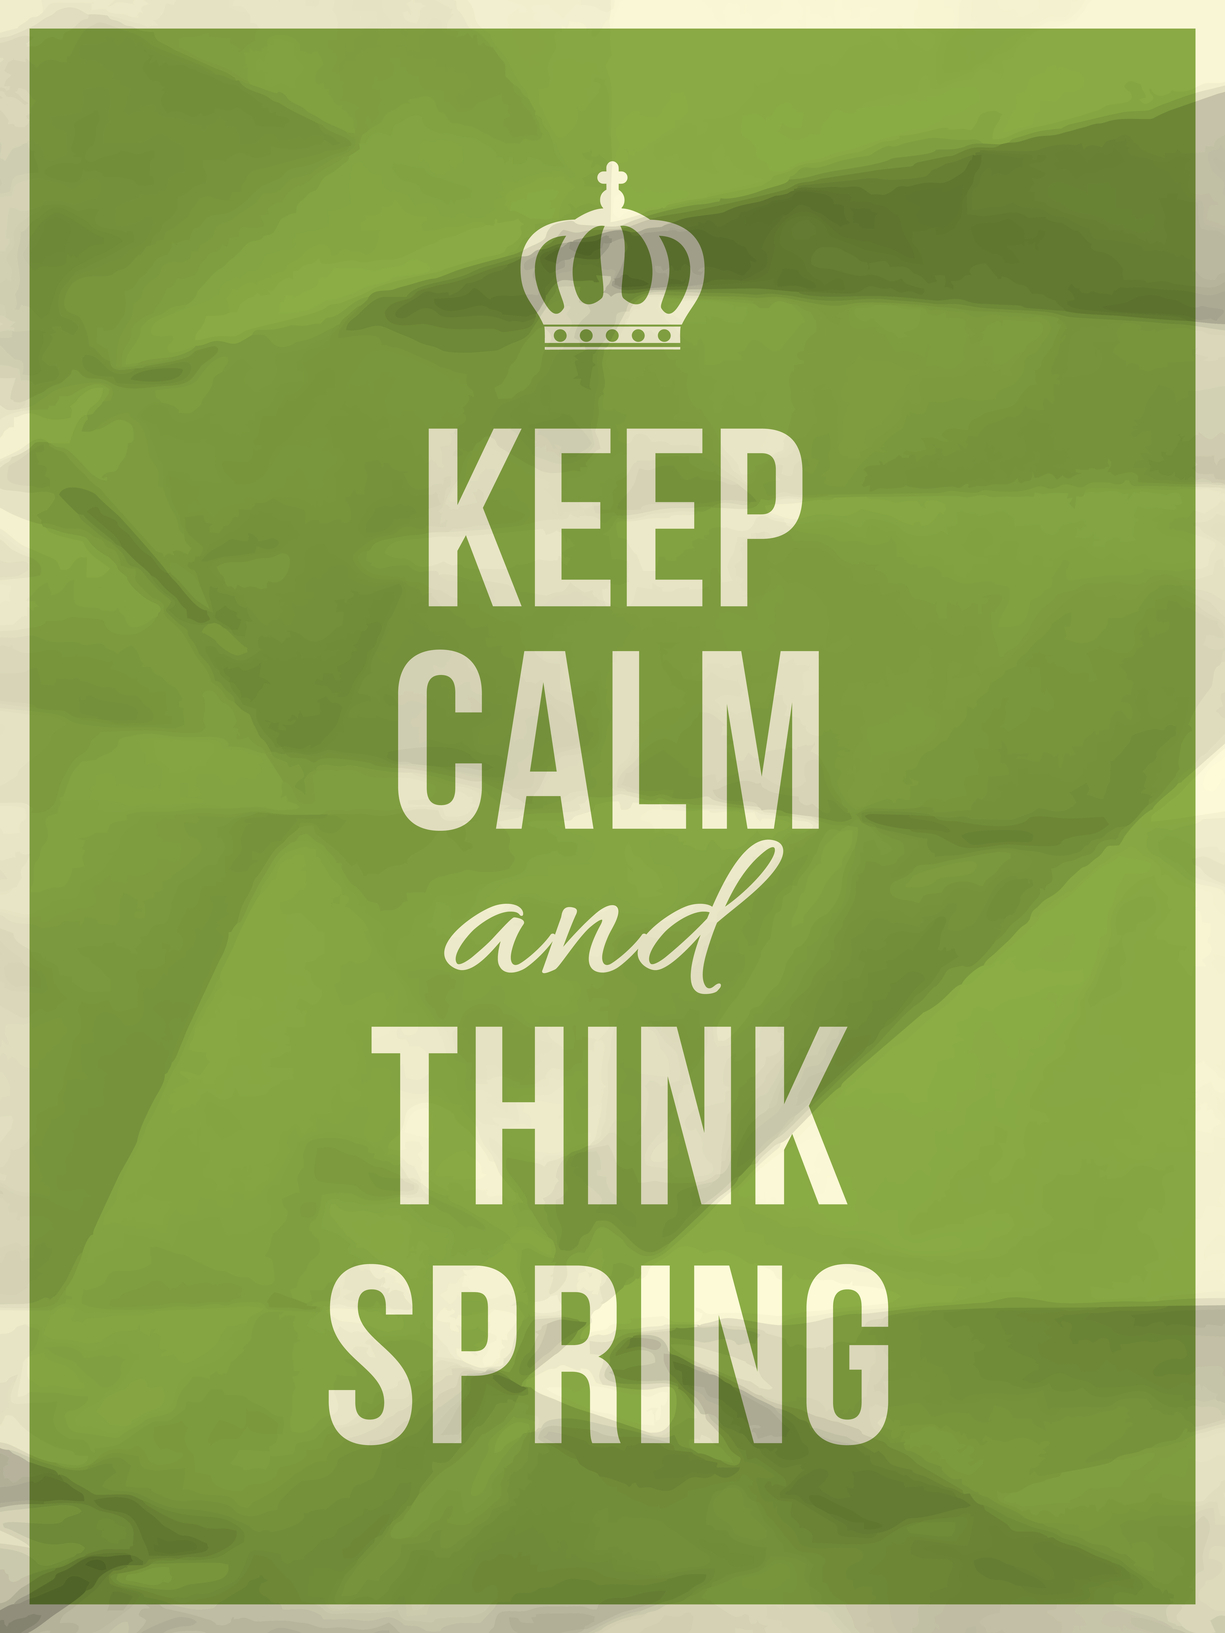 Keep calm and think spring